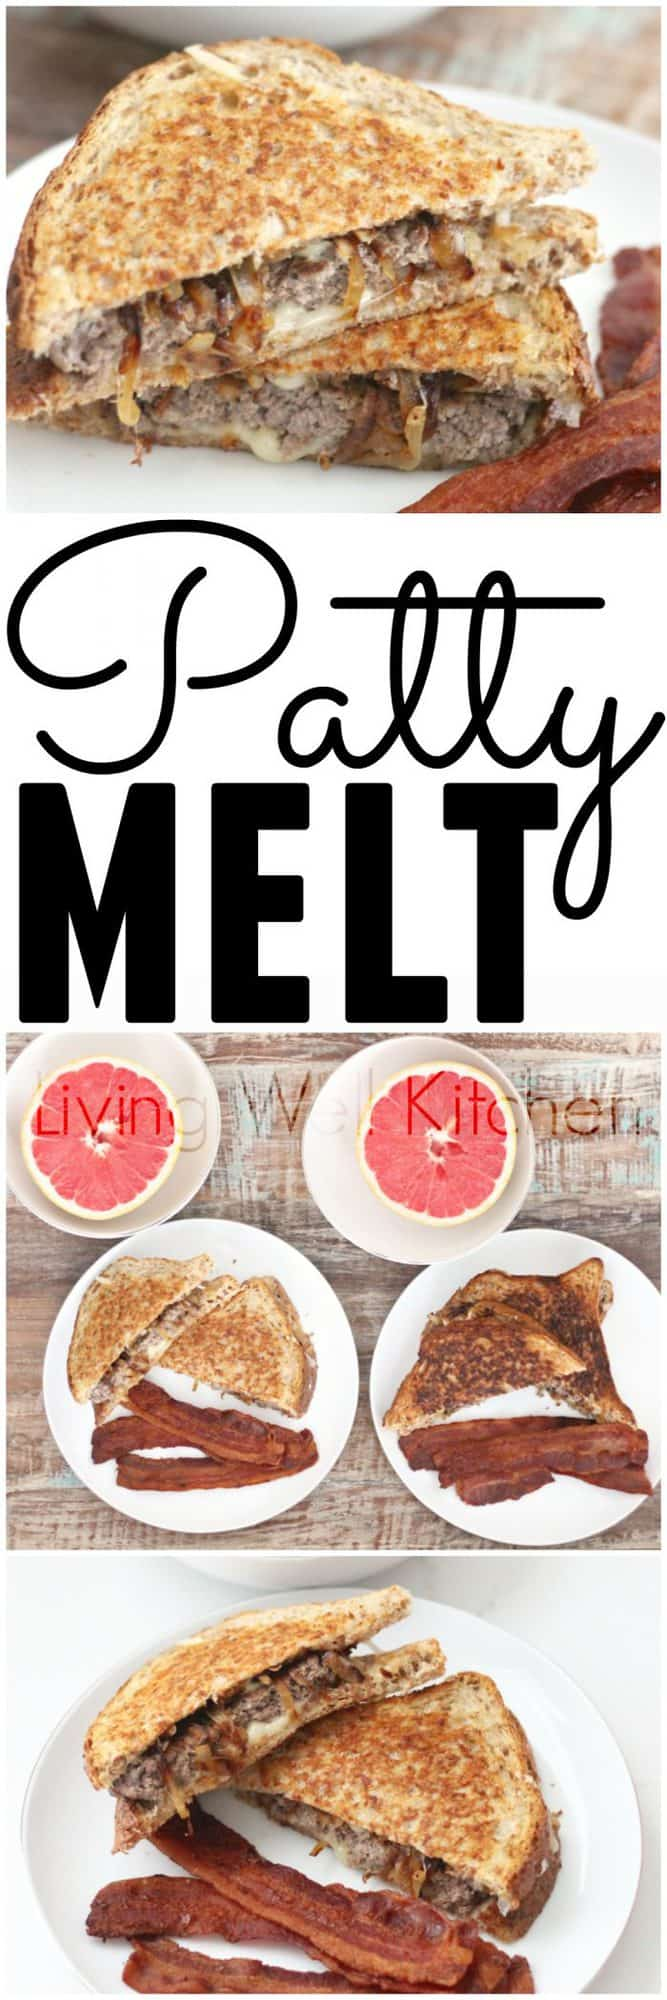 Classic diner food redone, this patty melt is a swiss cheese, ground sirloin,caramelized onion filled treat that will surely satisfy your craving. Patty Melt from Living Well Kitchen @memeinge